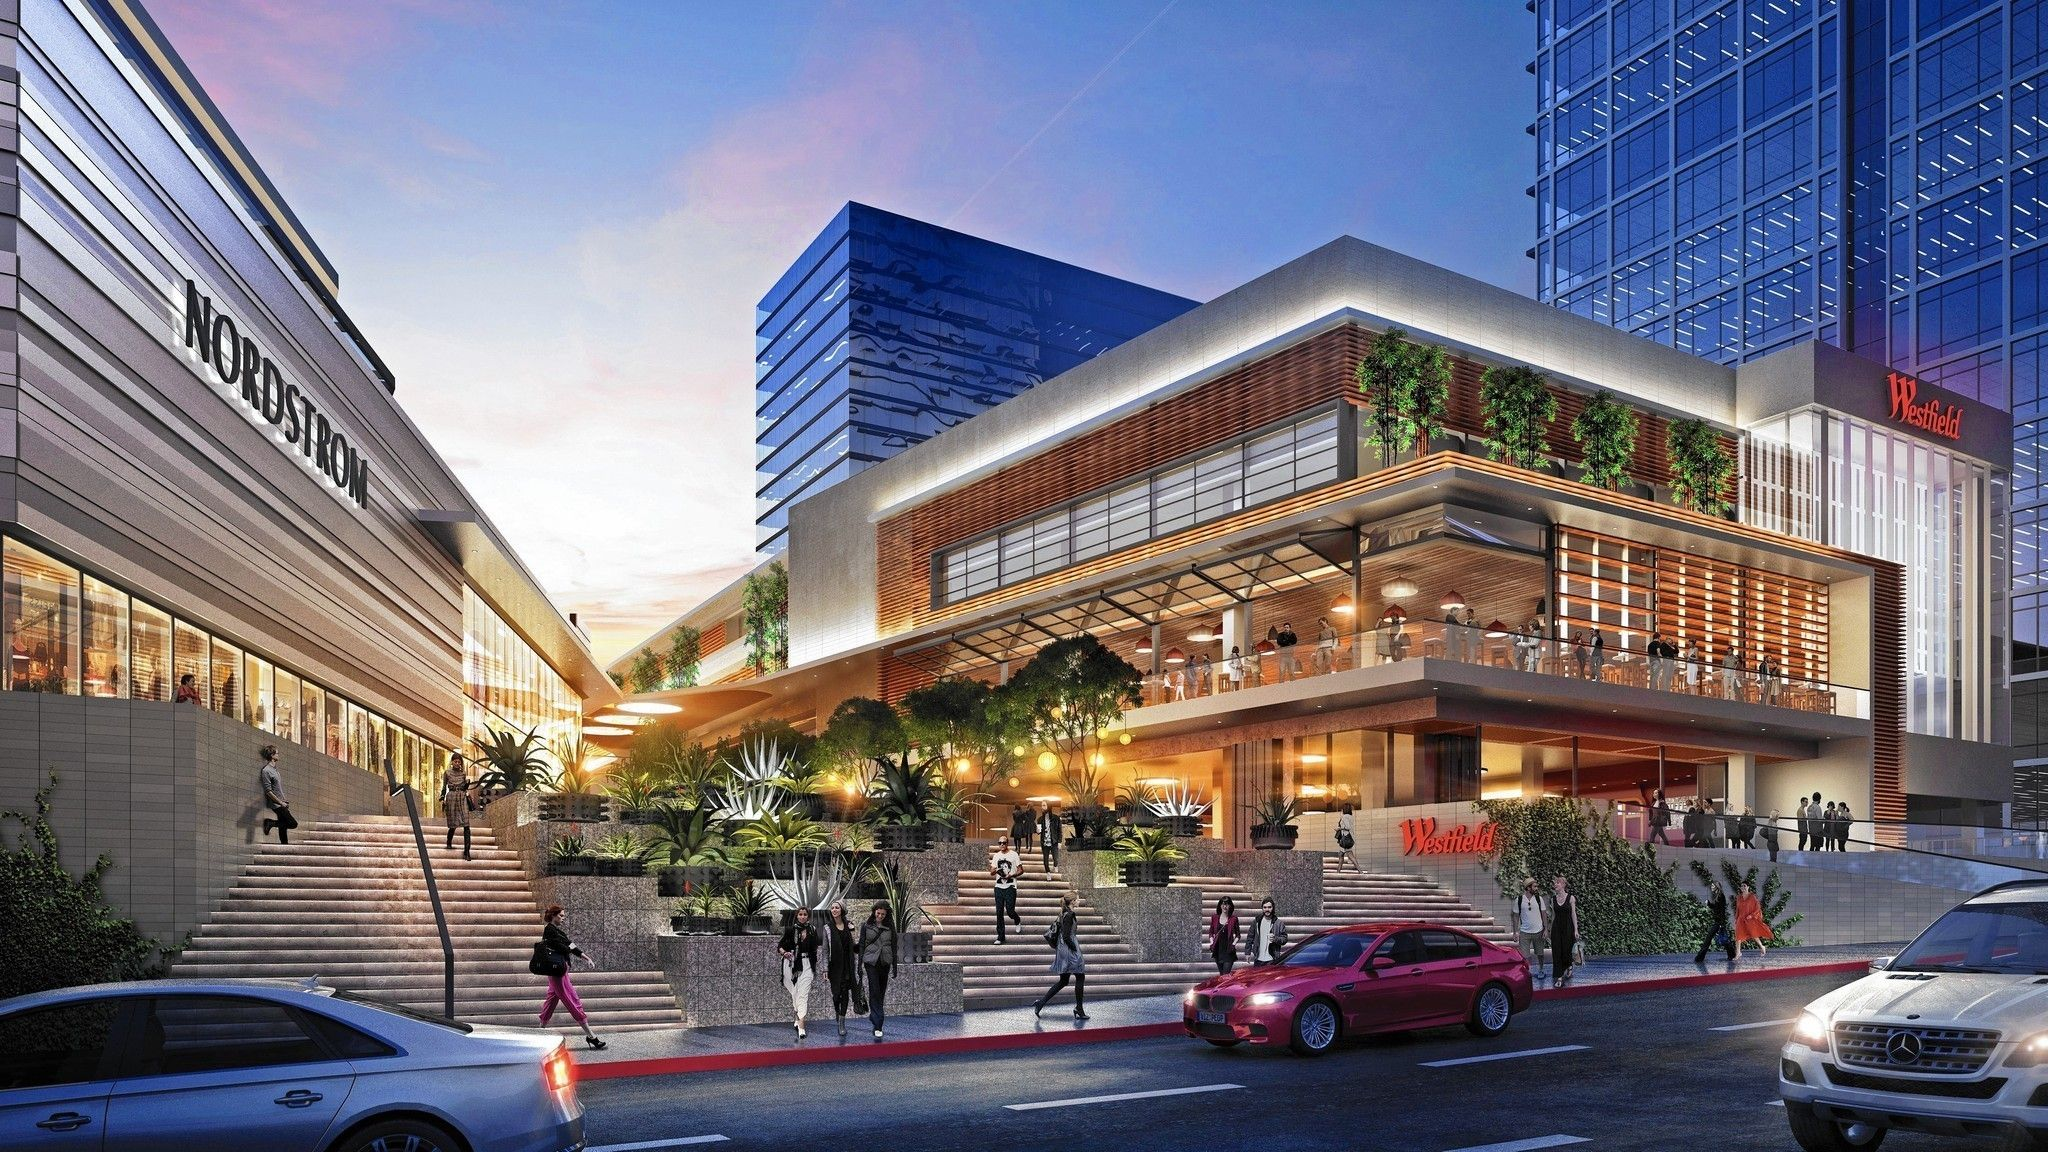 Nordstrom And Eataly Are Helping Century City S Mall Go Glam Westfield Century City Century City Retail Facade